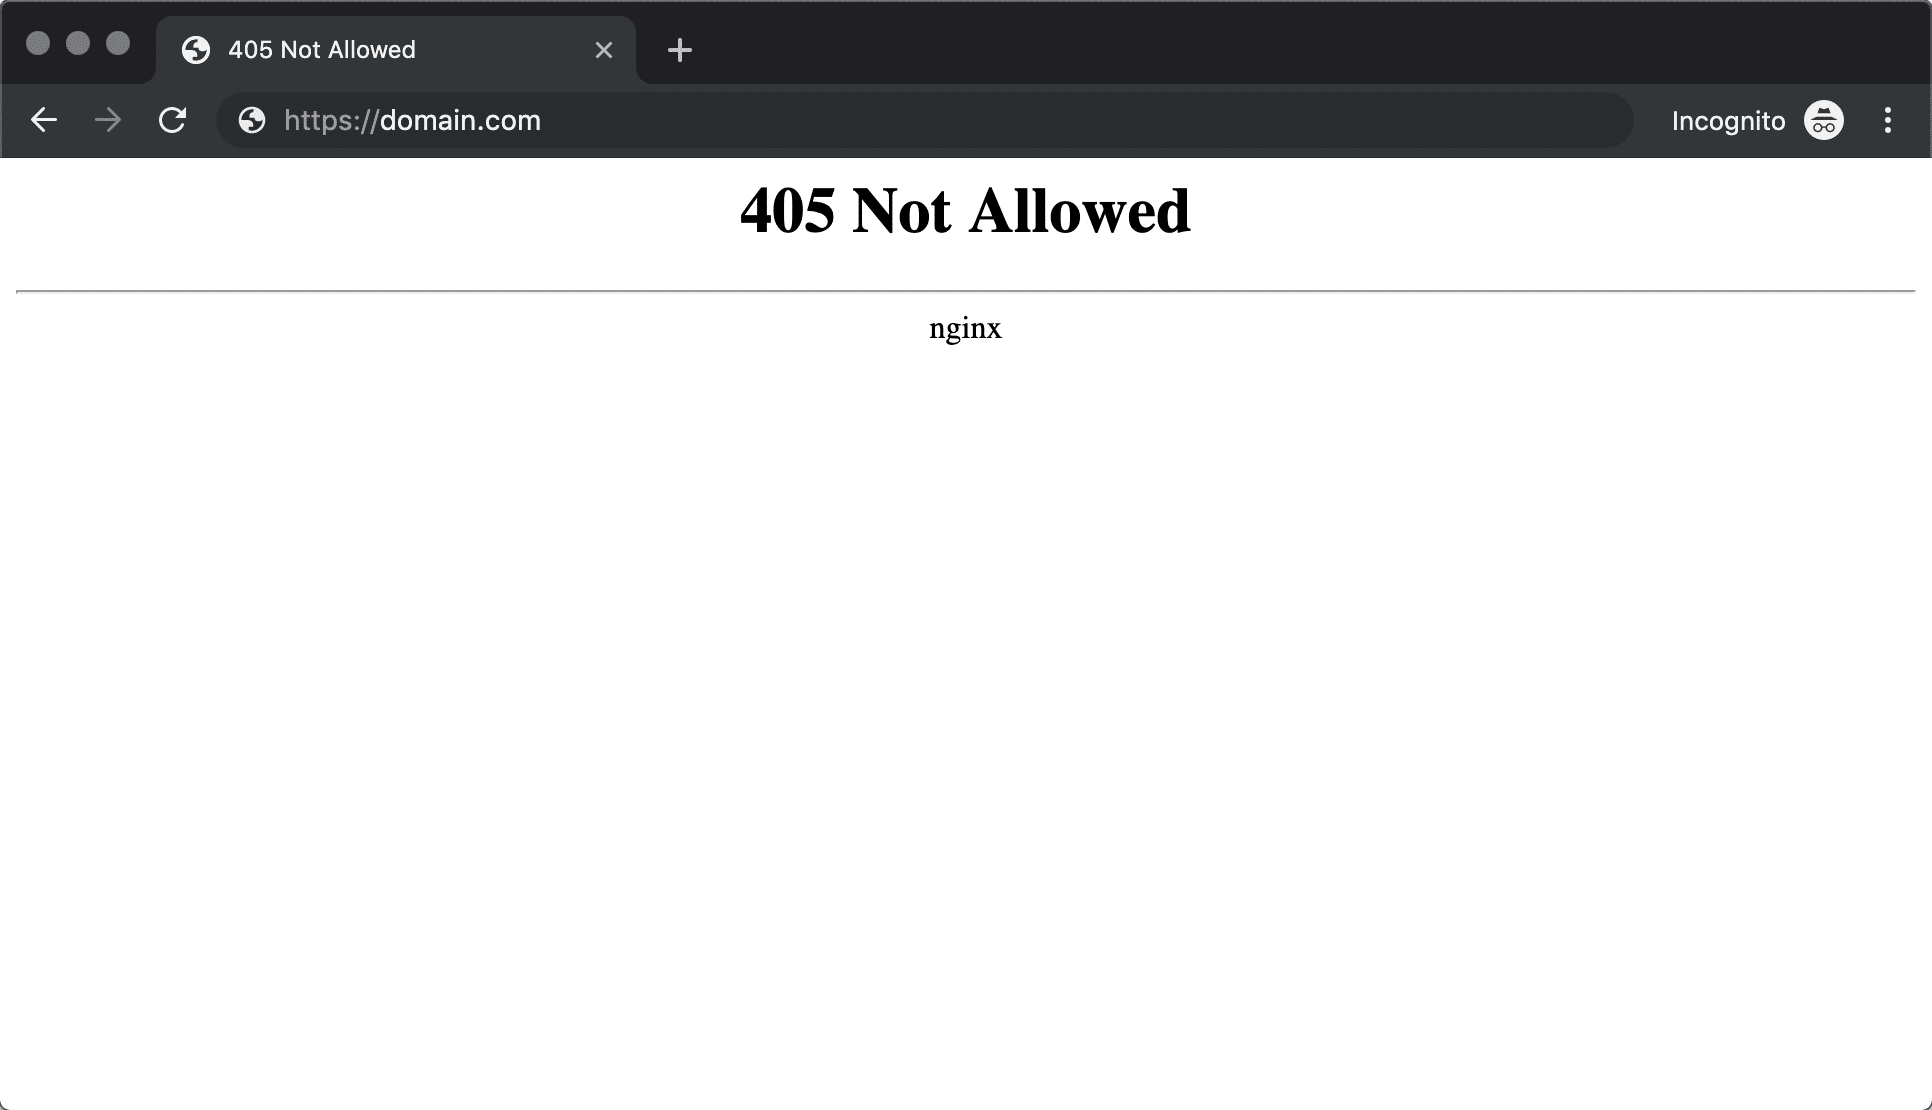 405 Not Allowed Error Nginx in Chrome